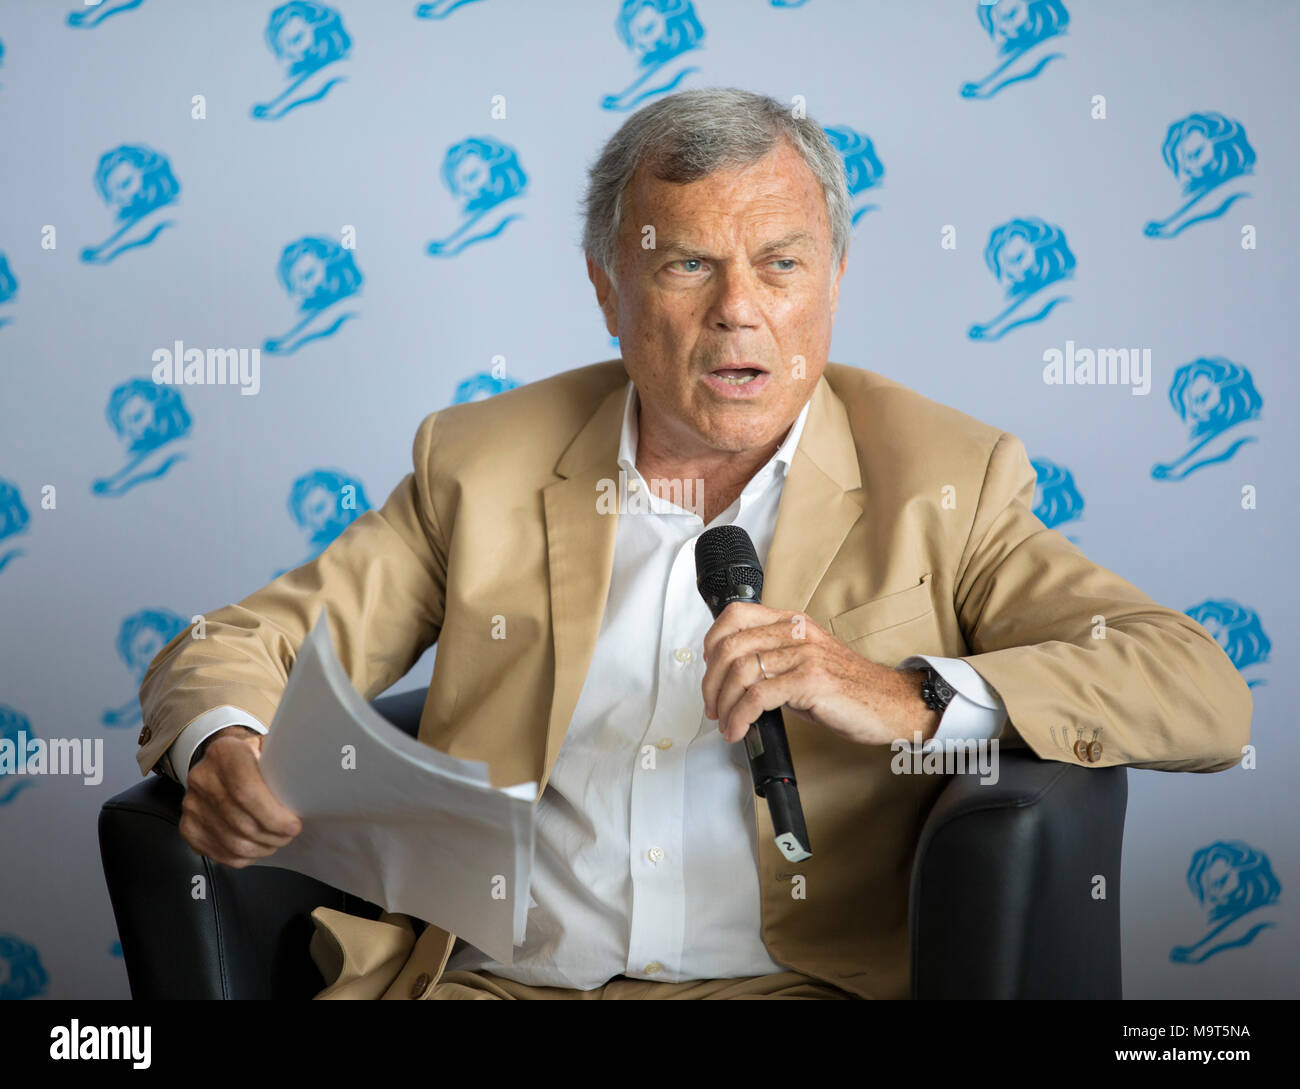 Sir Martin Sorrell, Chairman and Chief Executive Officer of advertising company WPP, attends Cannes Lions Festival, Cannes France June 23 2017 © ifnm Stock Photo